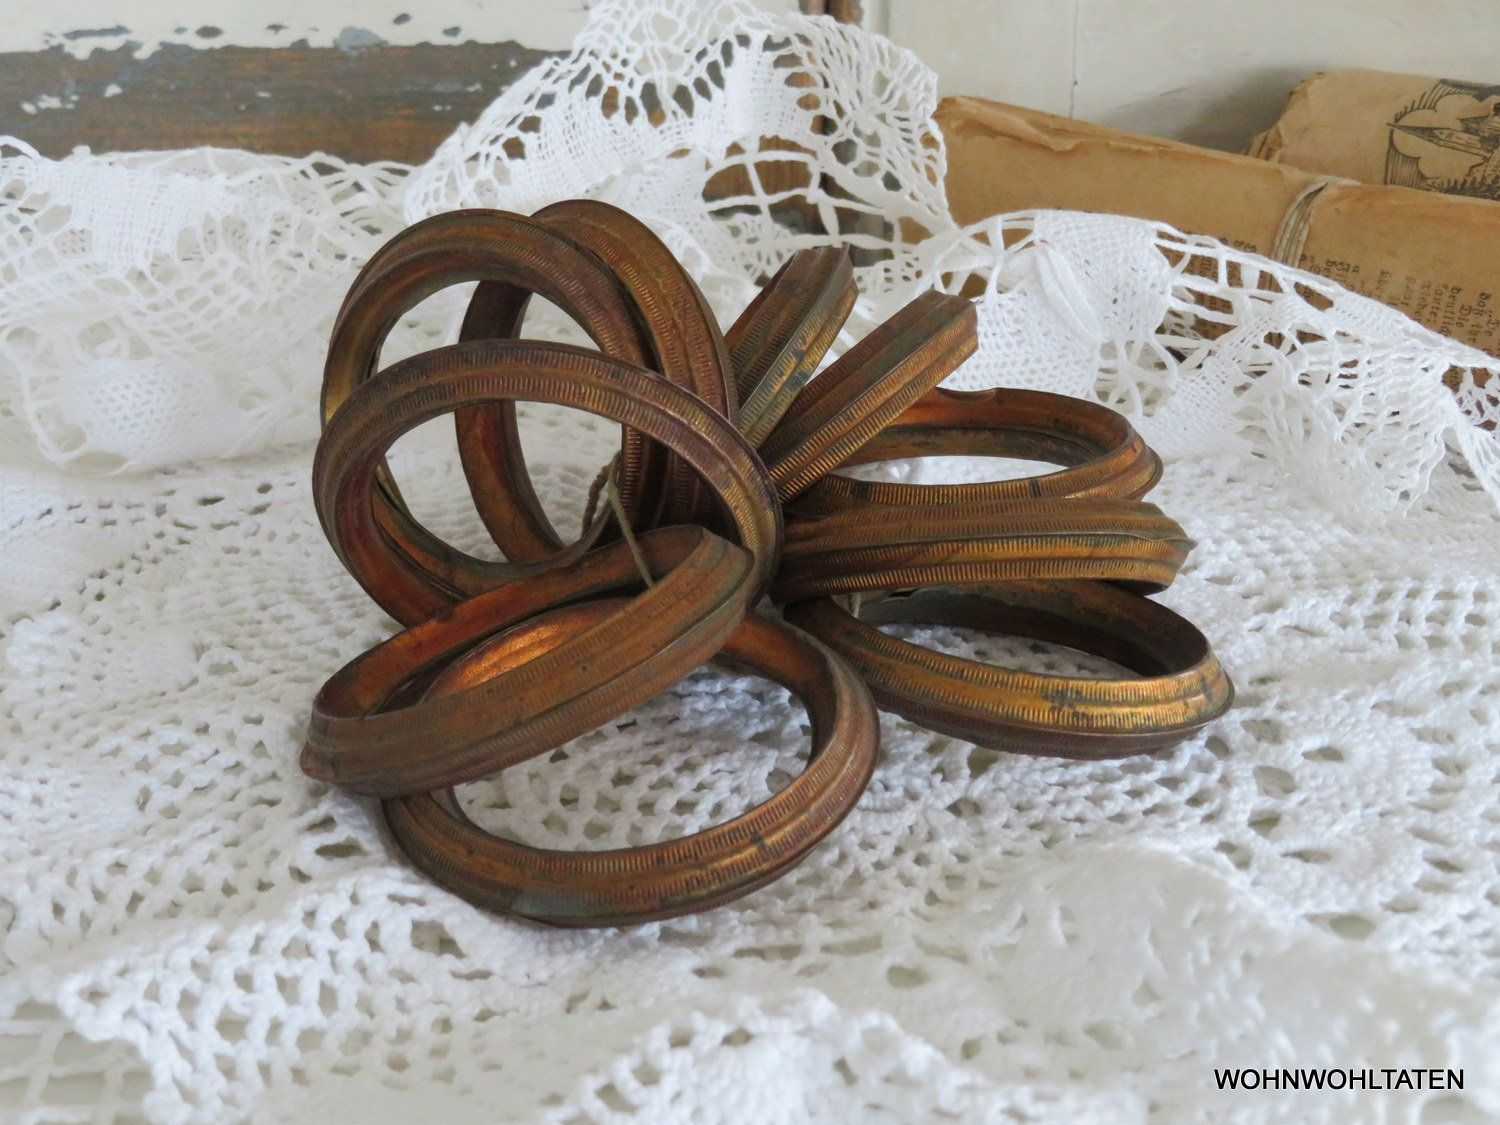 French Antique Curtain Rings 10 Pieces Large Copper Rings Vintage